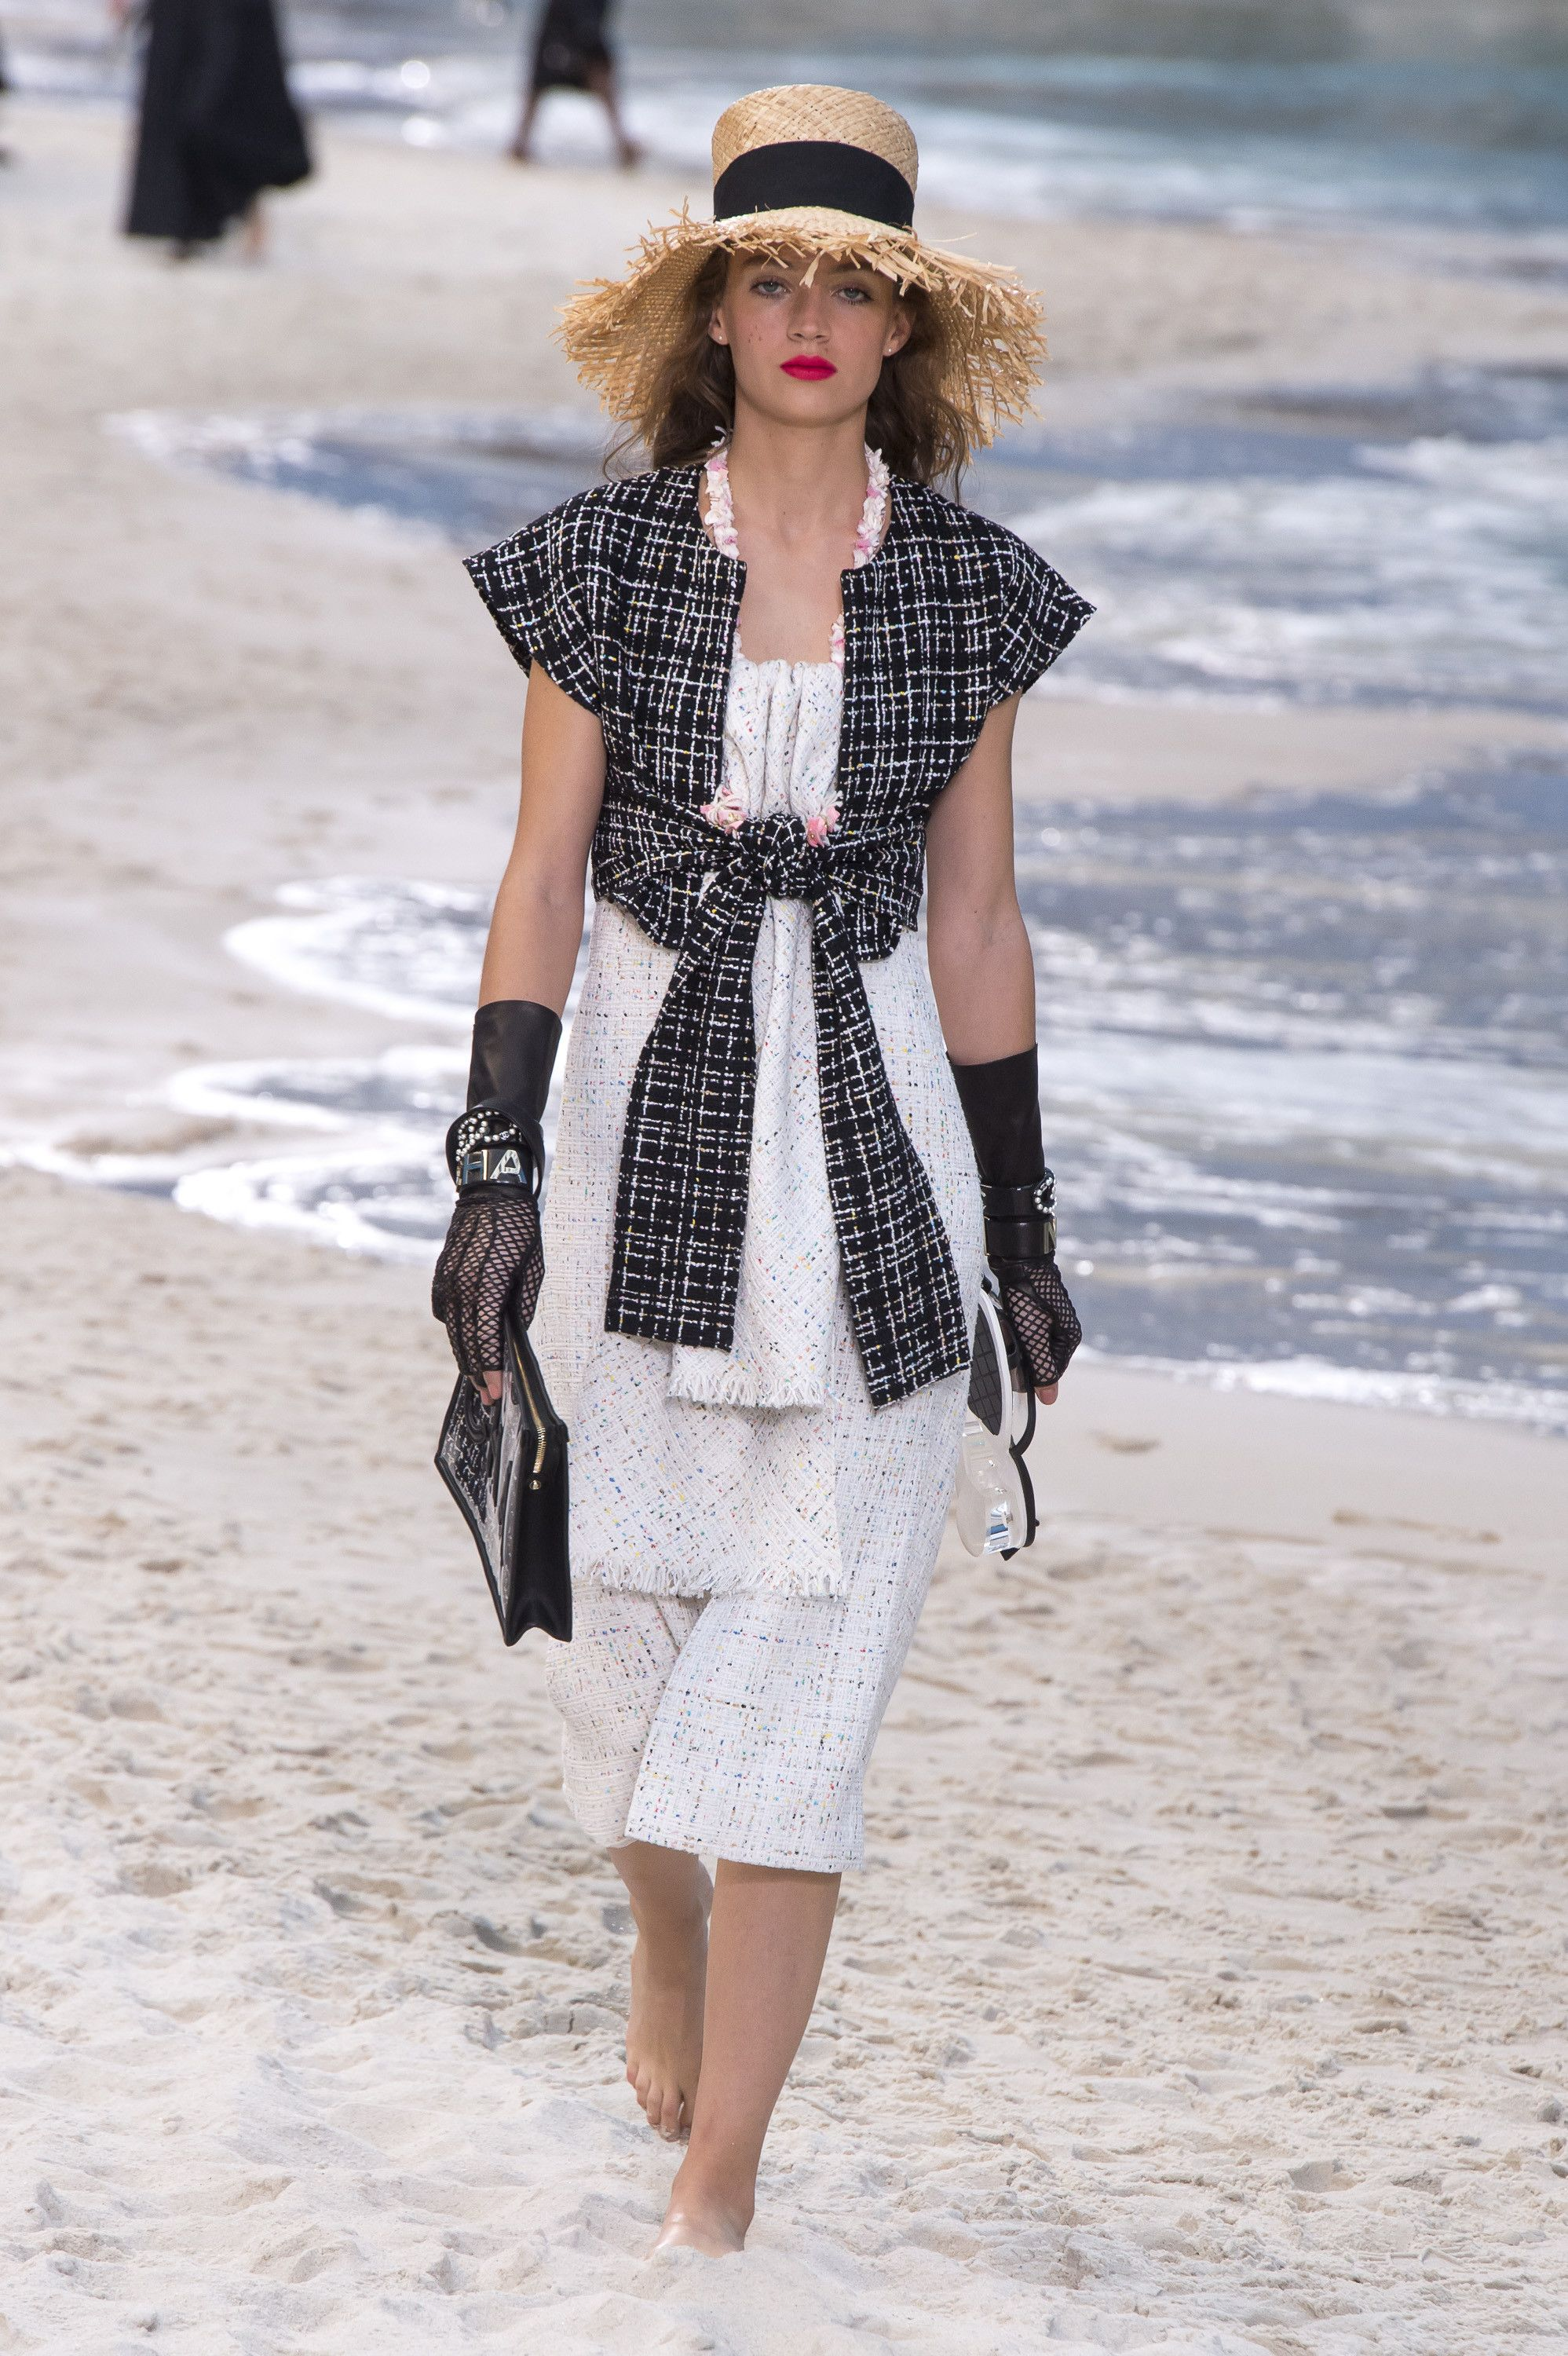 7614862e68bd Chanel   VOGUE 2019   Pinterest   Chanel spring, Chanel и Fashion